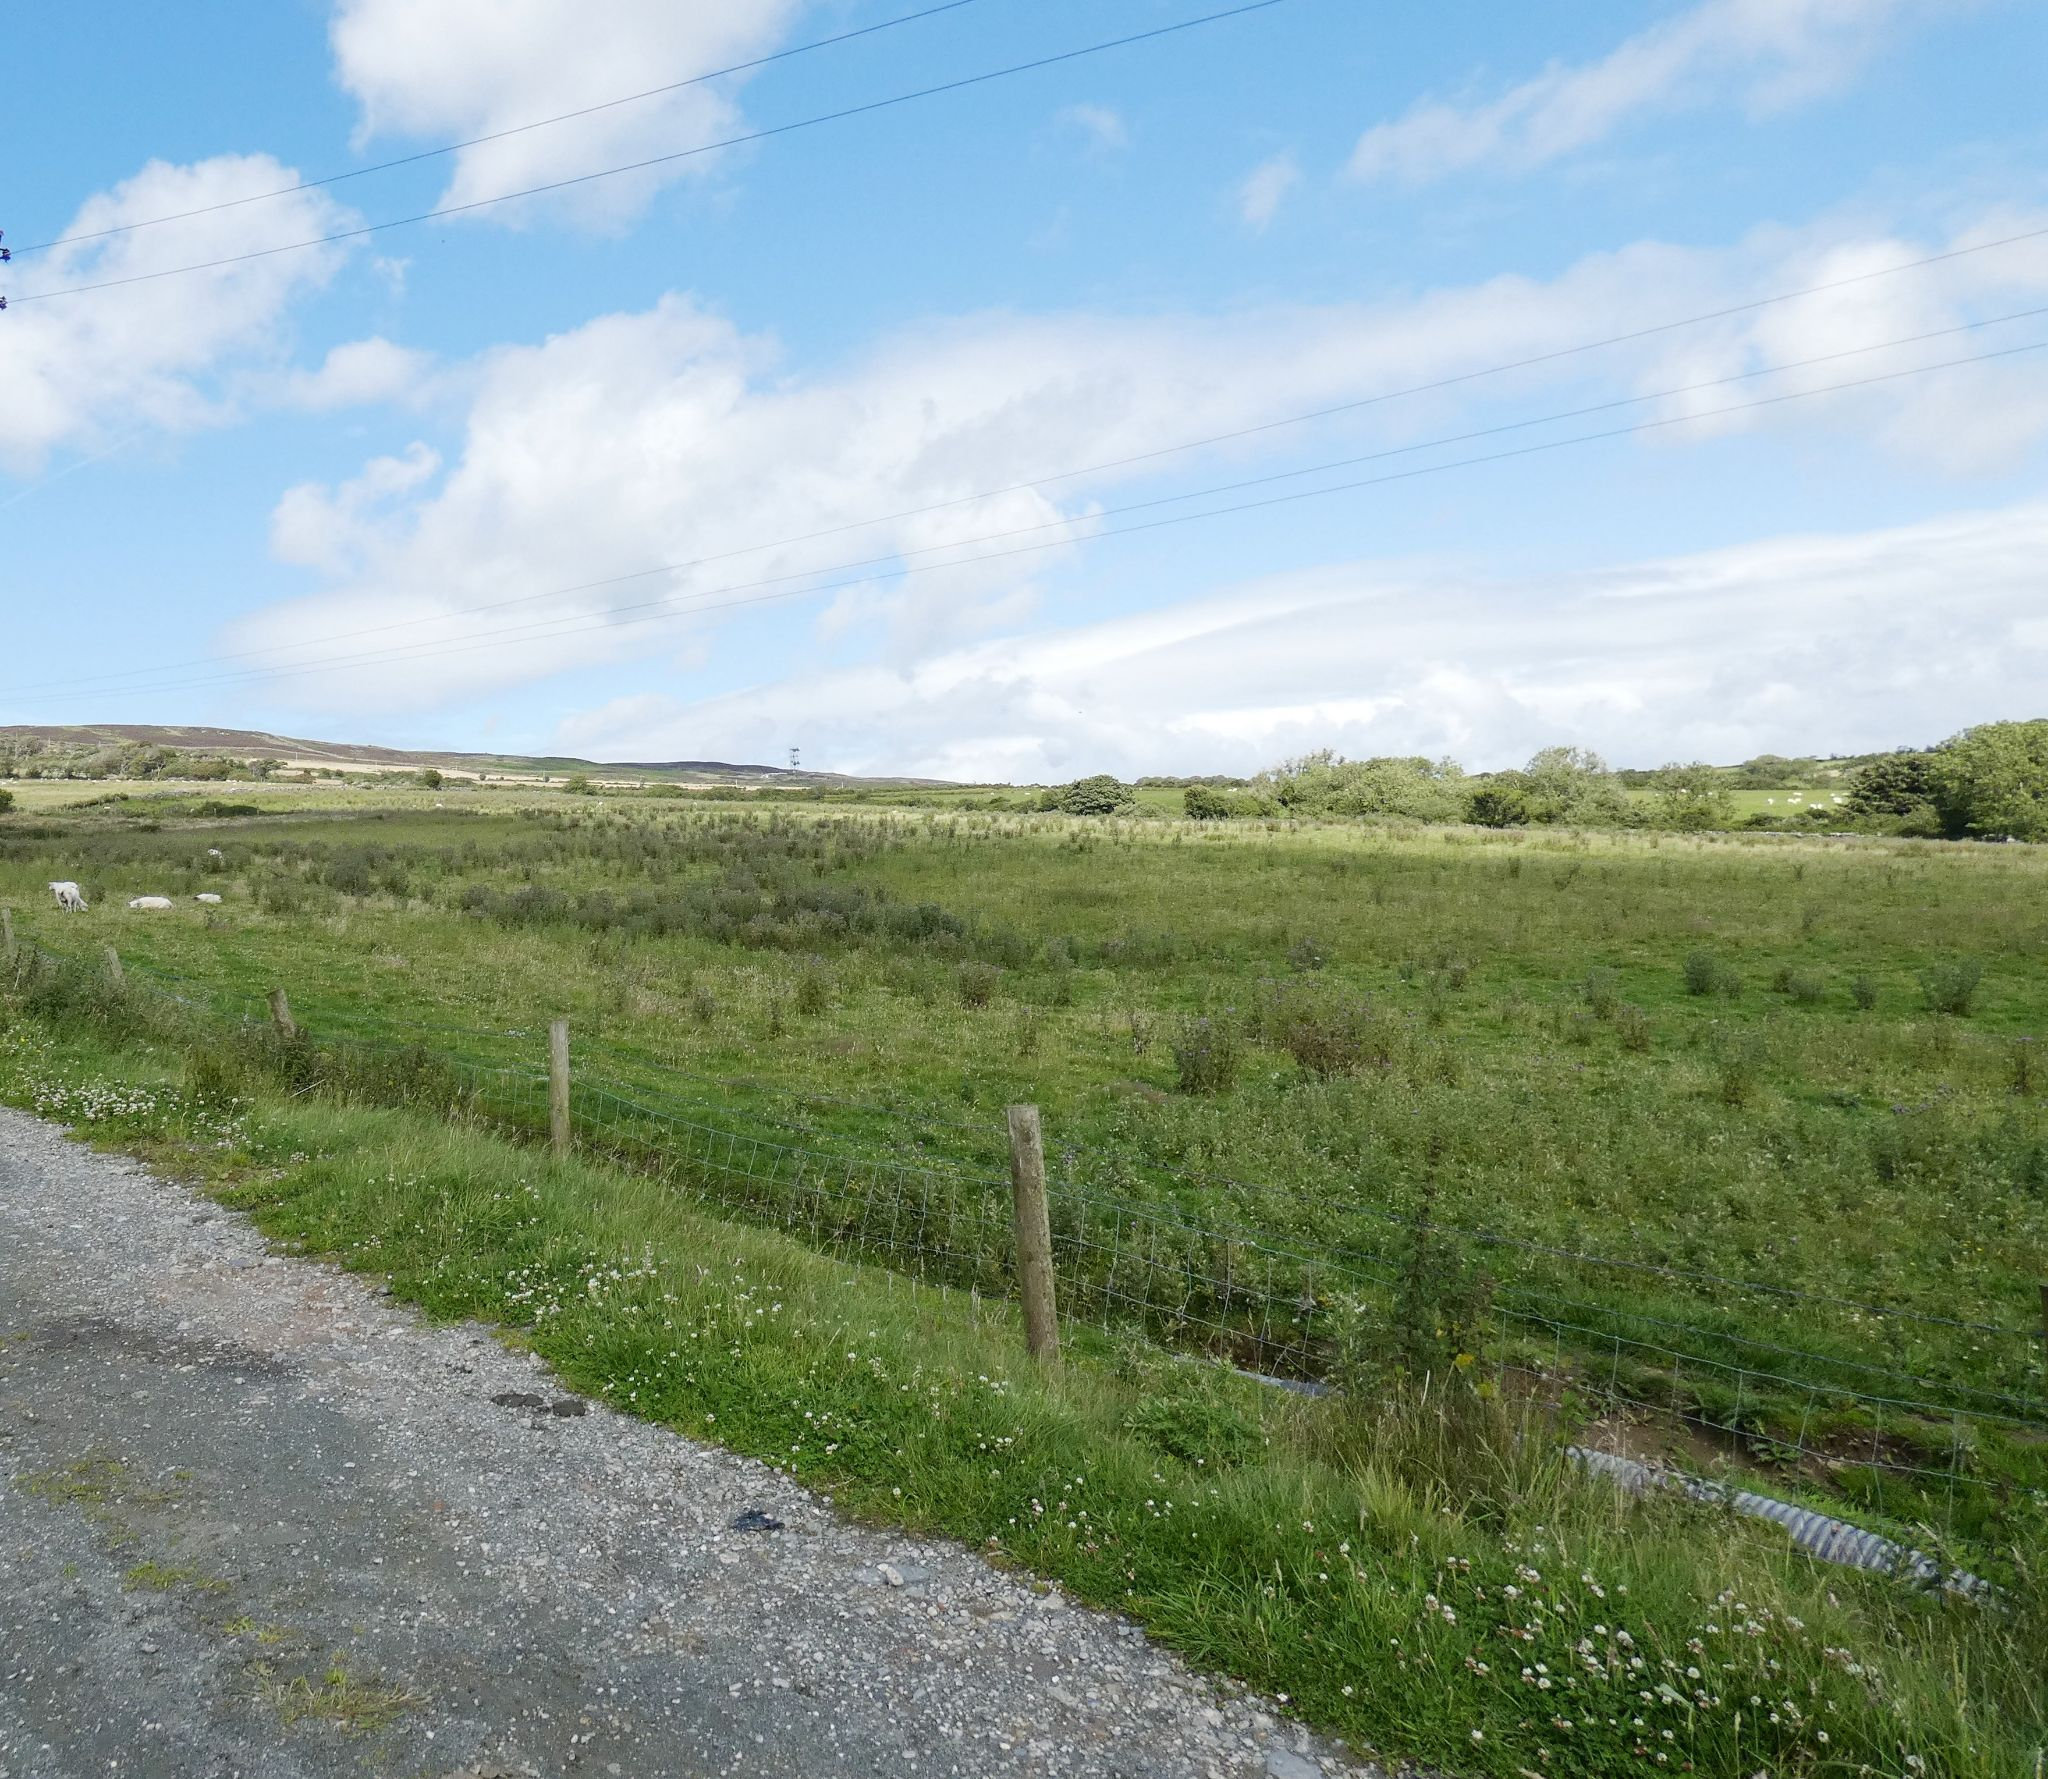 Plot Land For Sale in Abbeylands, Onchan - Photograph 7